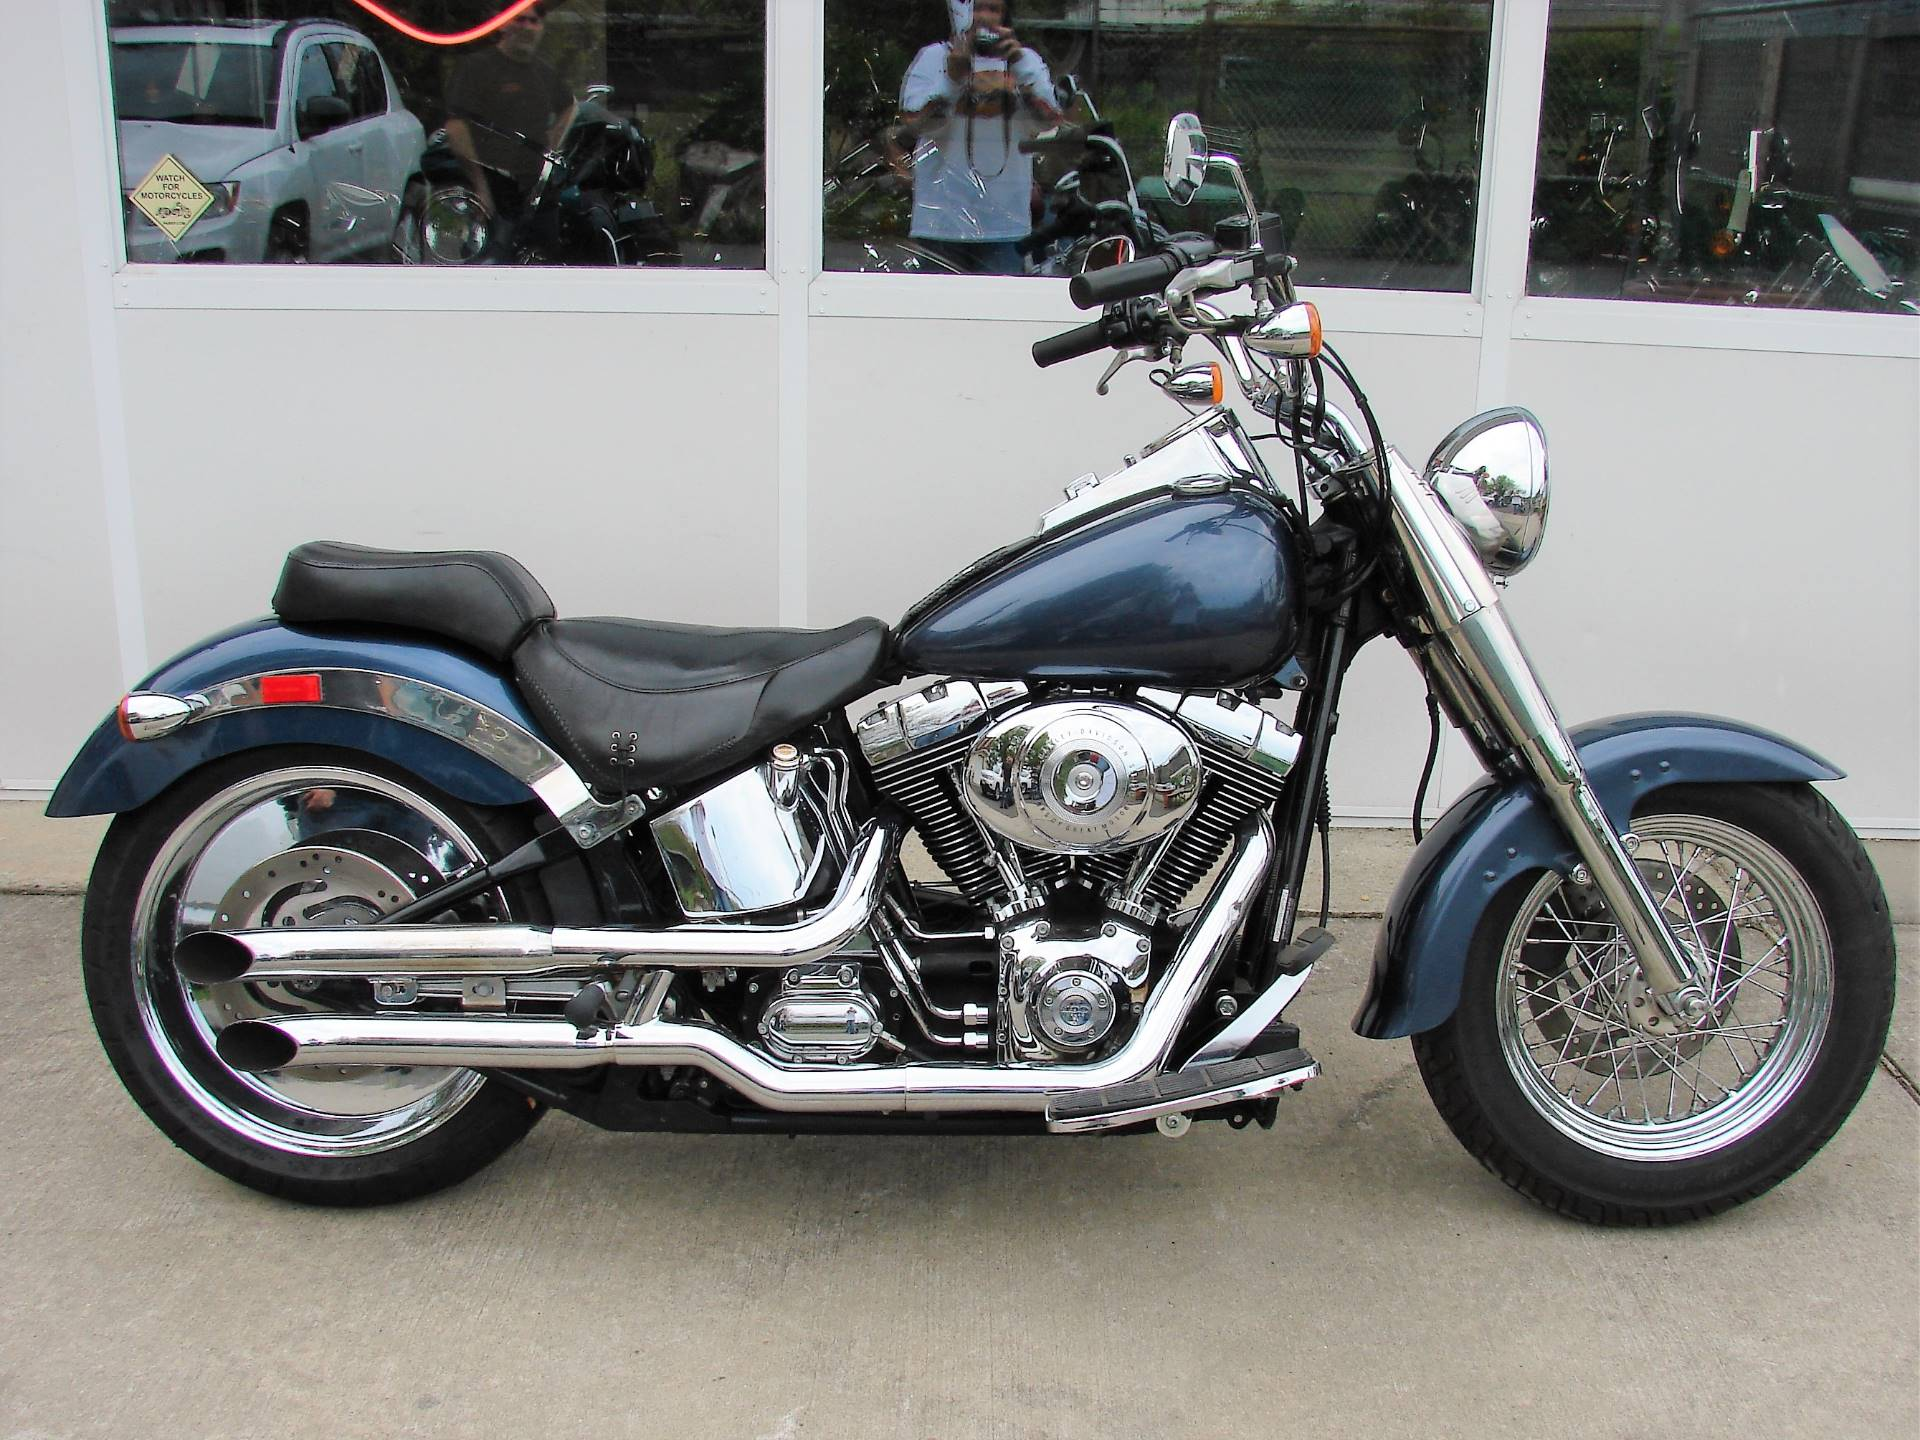 2003 Harley-Davidson Heritage Softail / Fatboy in Williamstown, New Jersey - Photo 8